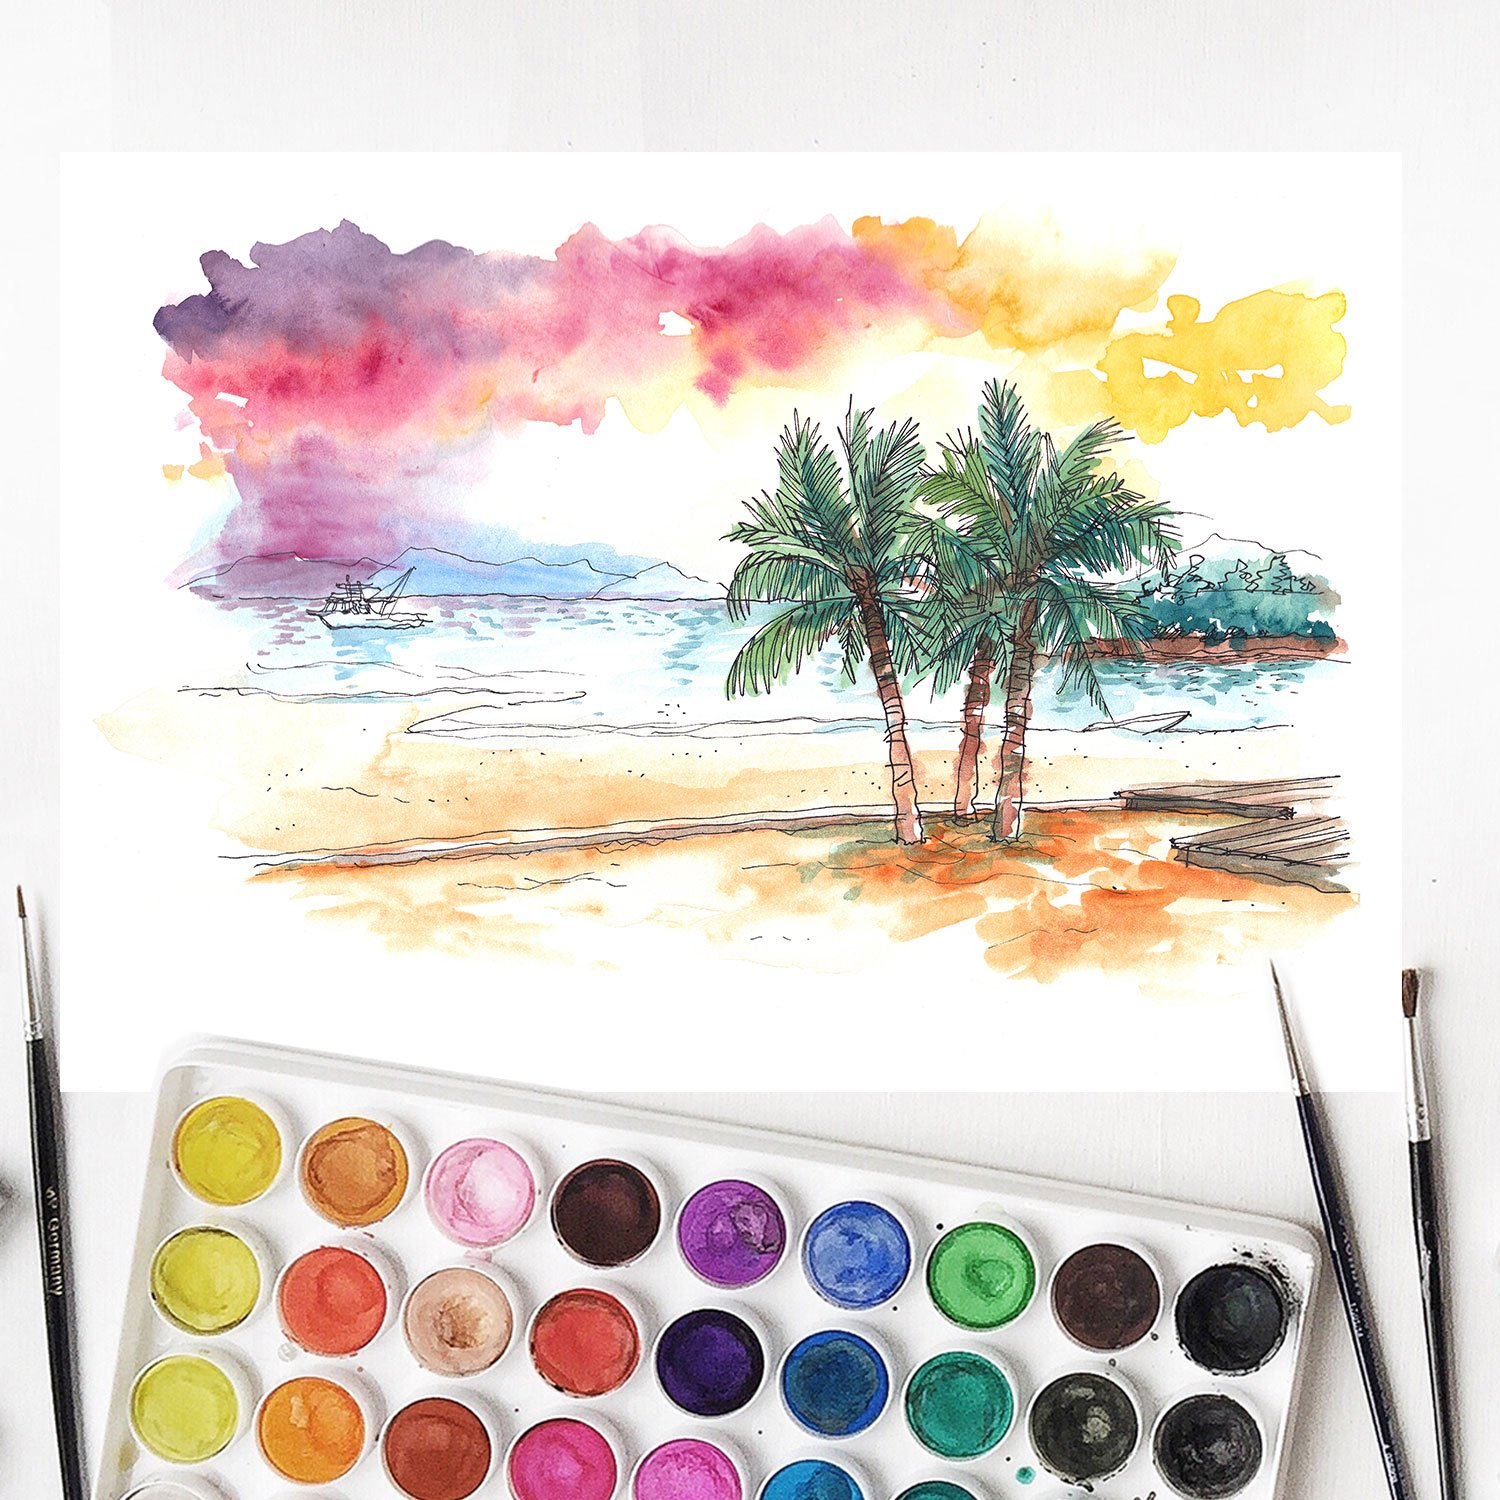 U.S. Art Supply 36 Watercolor Paint Set ONLY $6.96 (Reg. $19)